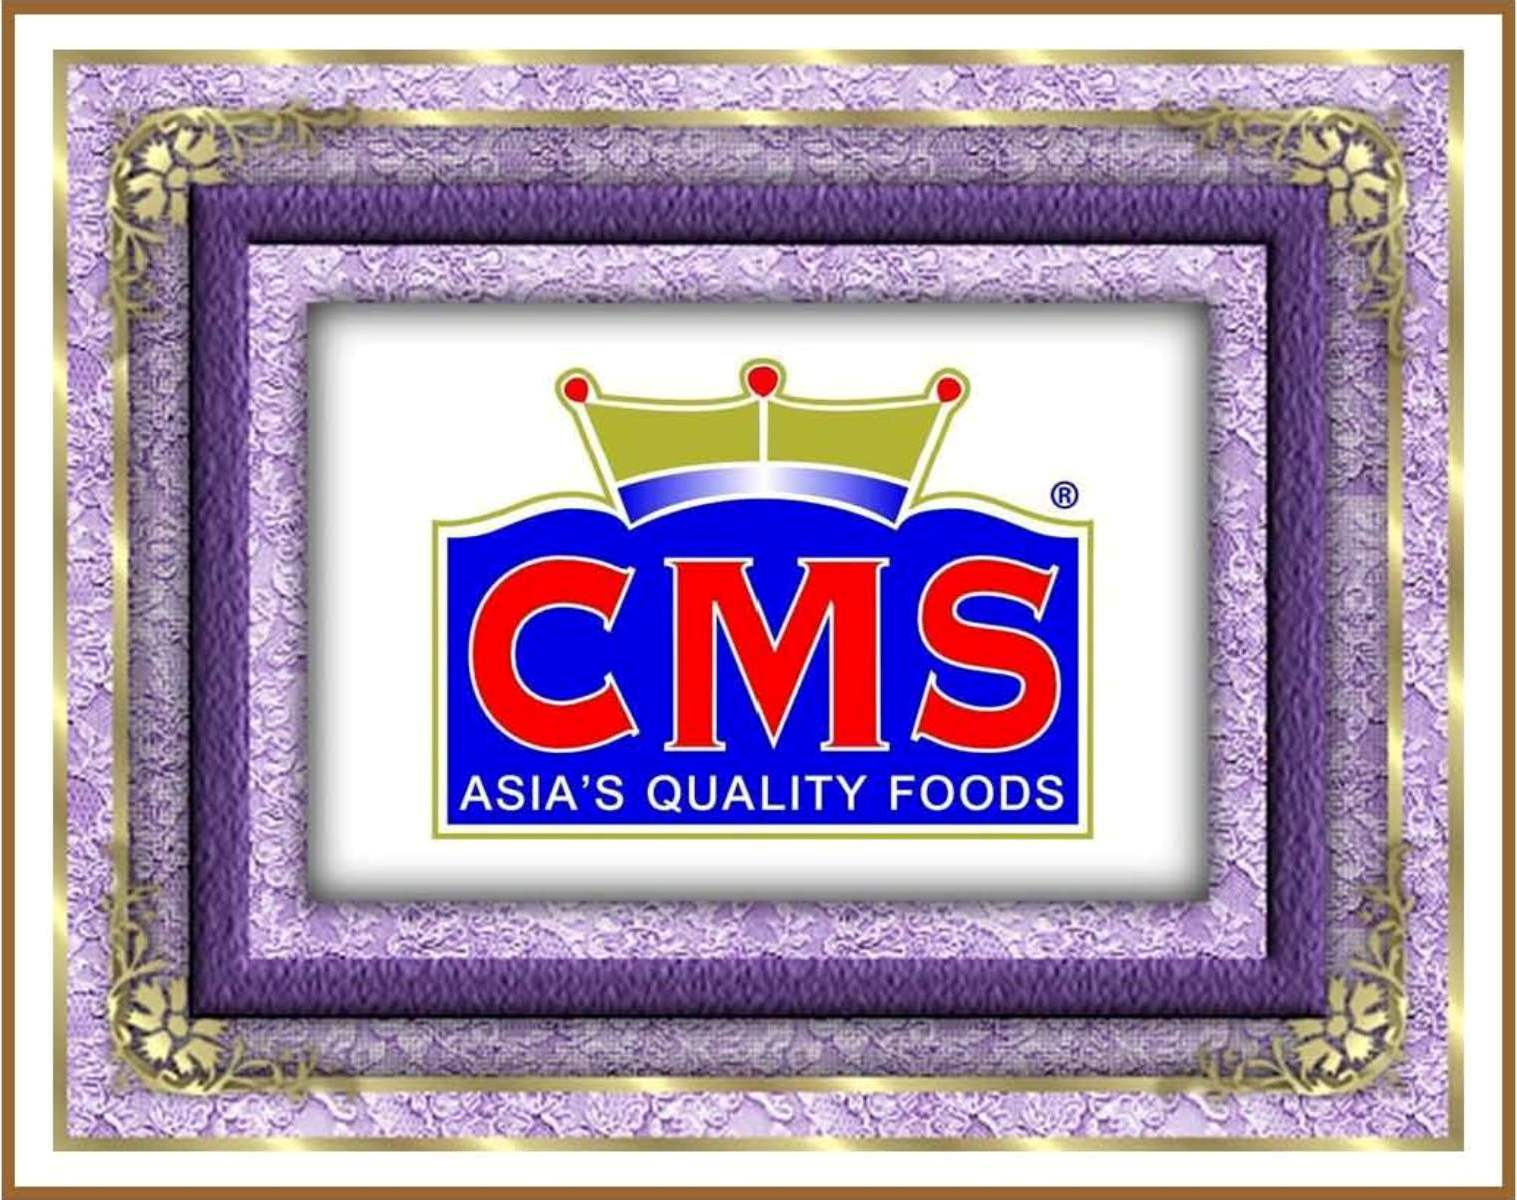 CMS WHOLESALE COMPANY SRL IS Manufacturer, Importer, Exporter Distribututor of Asian Foods & House Articles